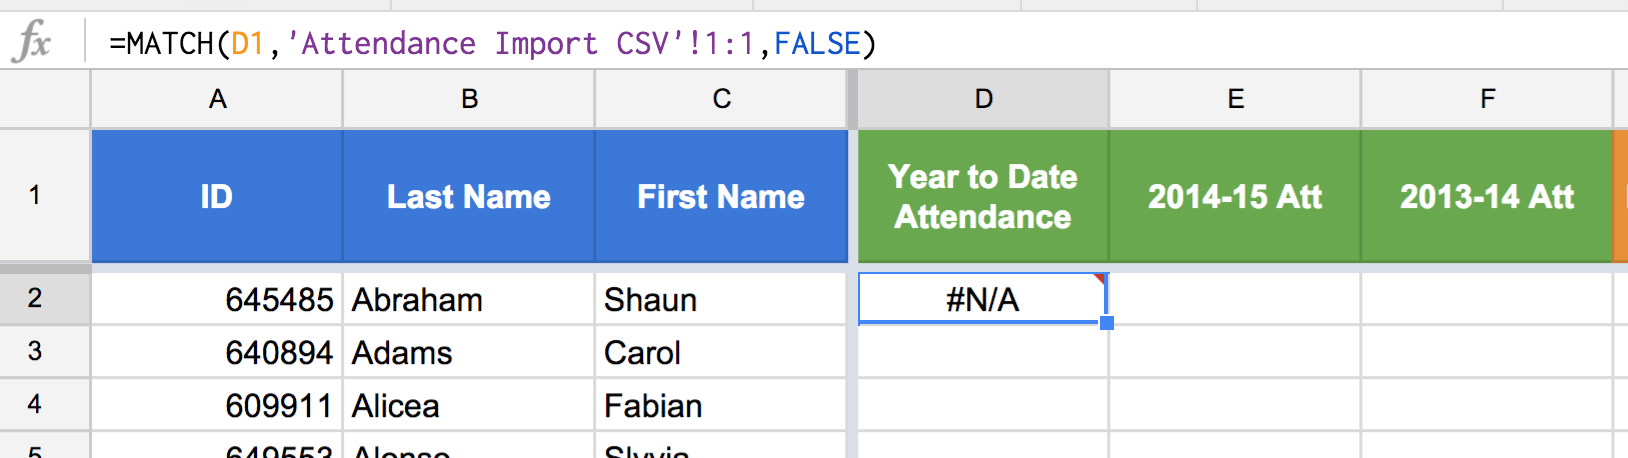 "Figure 4: A common mistake is attempting to match a search_key that is not actually in the range used in argument two. In the above case we get ""#N/A"" because ""Year to Date Attendance"", the search key, is not in the first row of the Attendance Import CSV. The key point is to be very careful that you are trying to match items that are exactly the same in the search_key and the range."